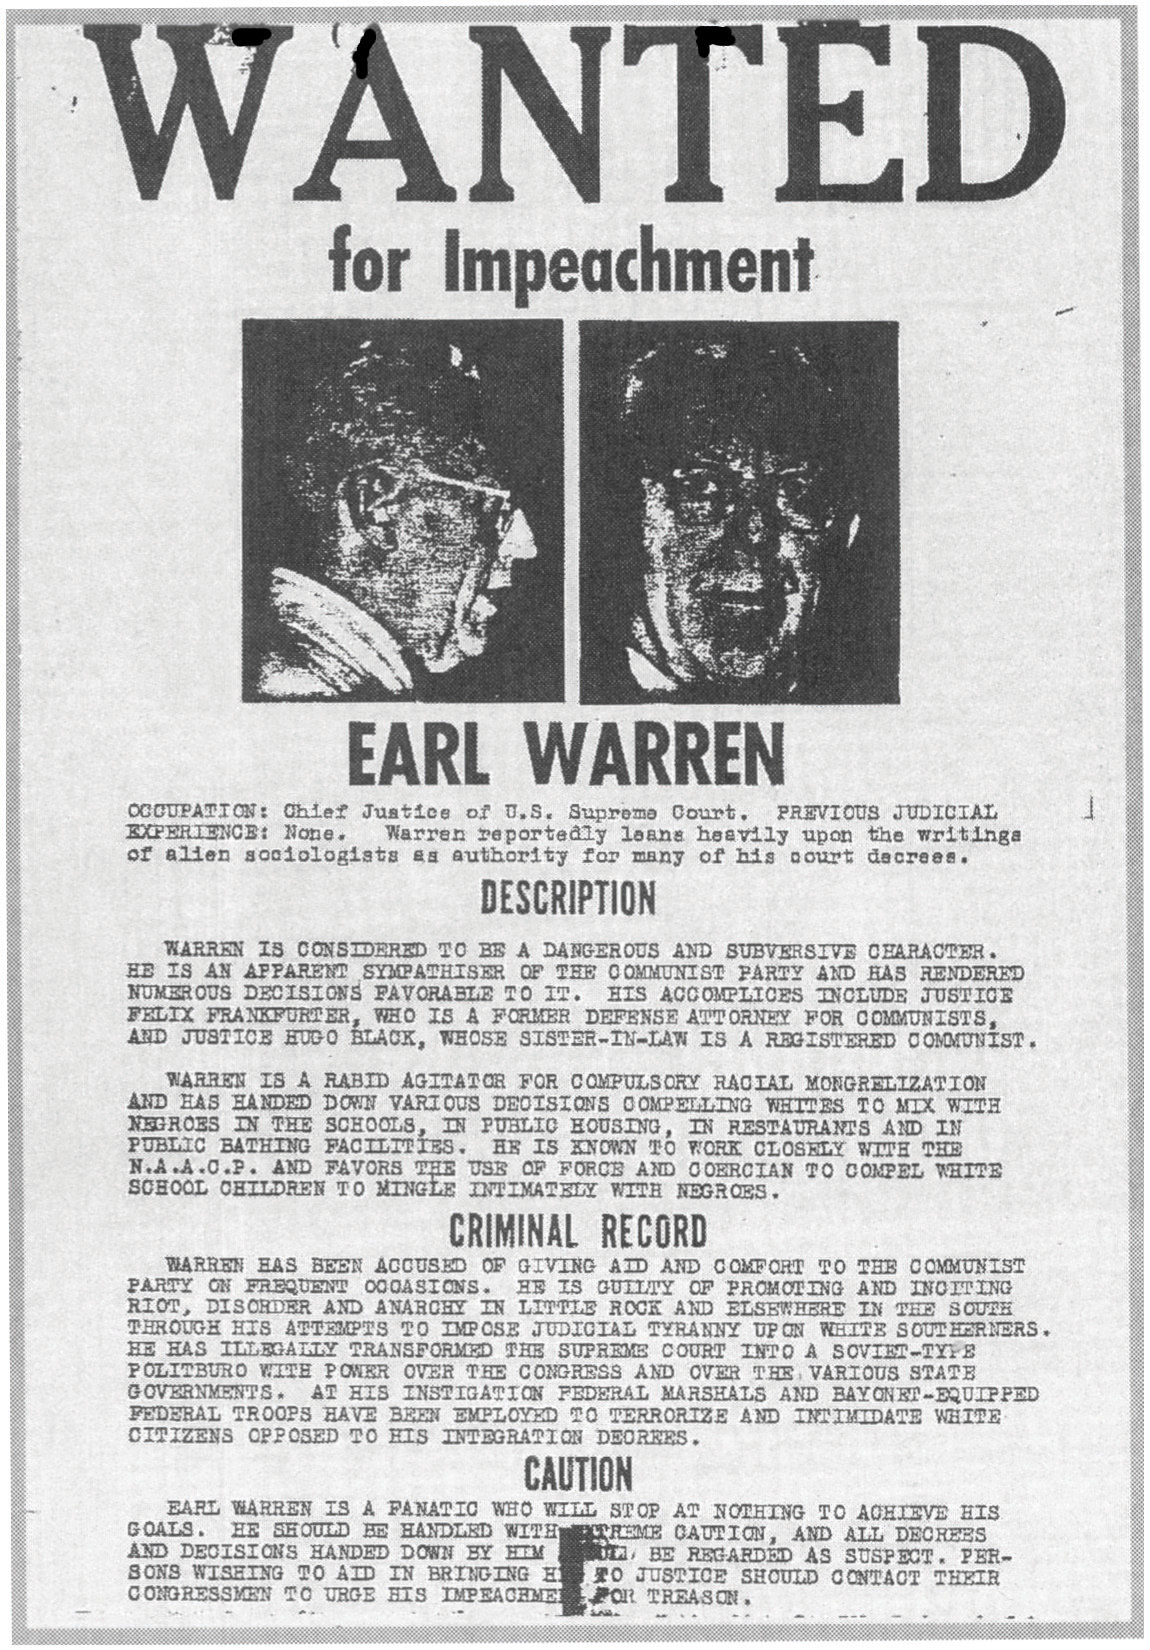 """A flyer printed in the old-fashioned style of """"Wanted"""" posters. It reads, """"Wanted for impeachment,"""" with mug shots of Earl Warren beneath, and the following sections: """"Description,"""" """"Criminal Record,"""" and """"Caution."""""""